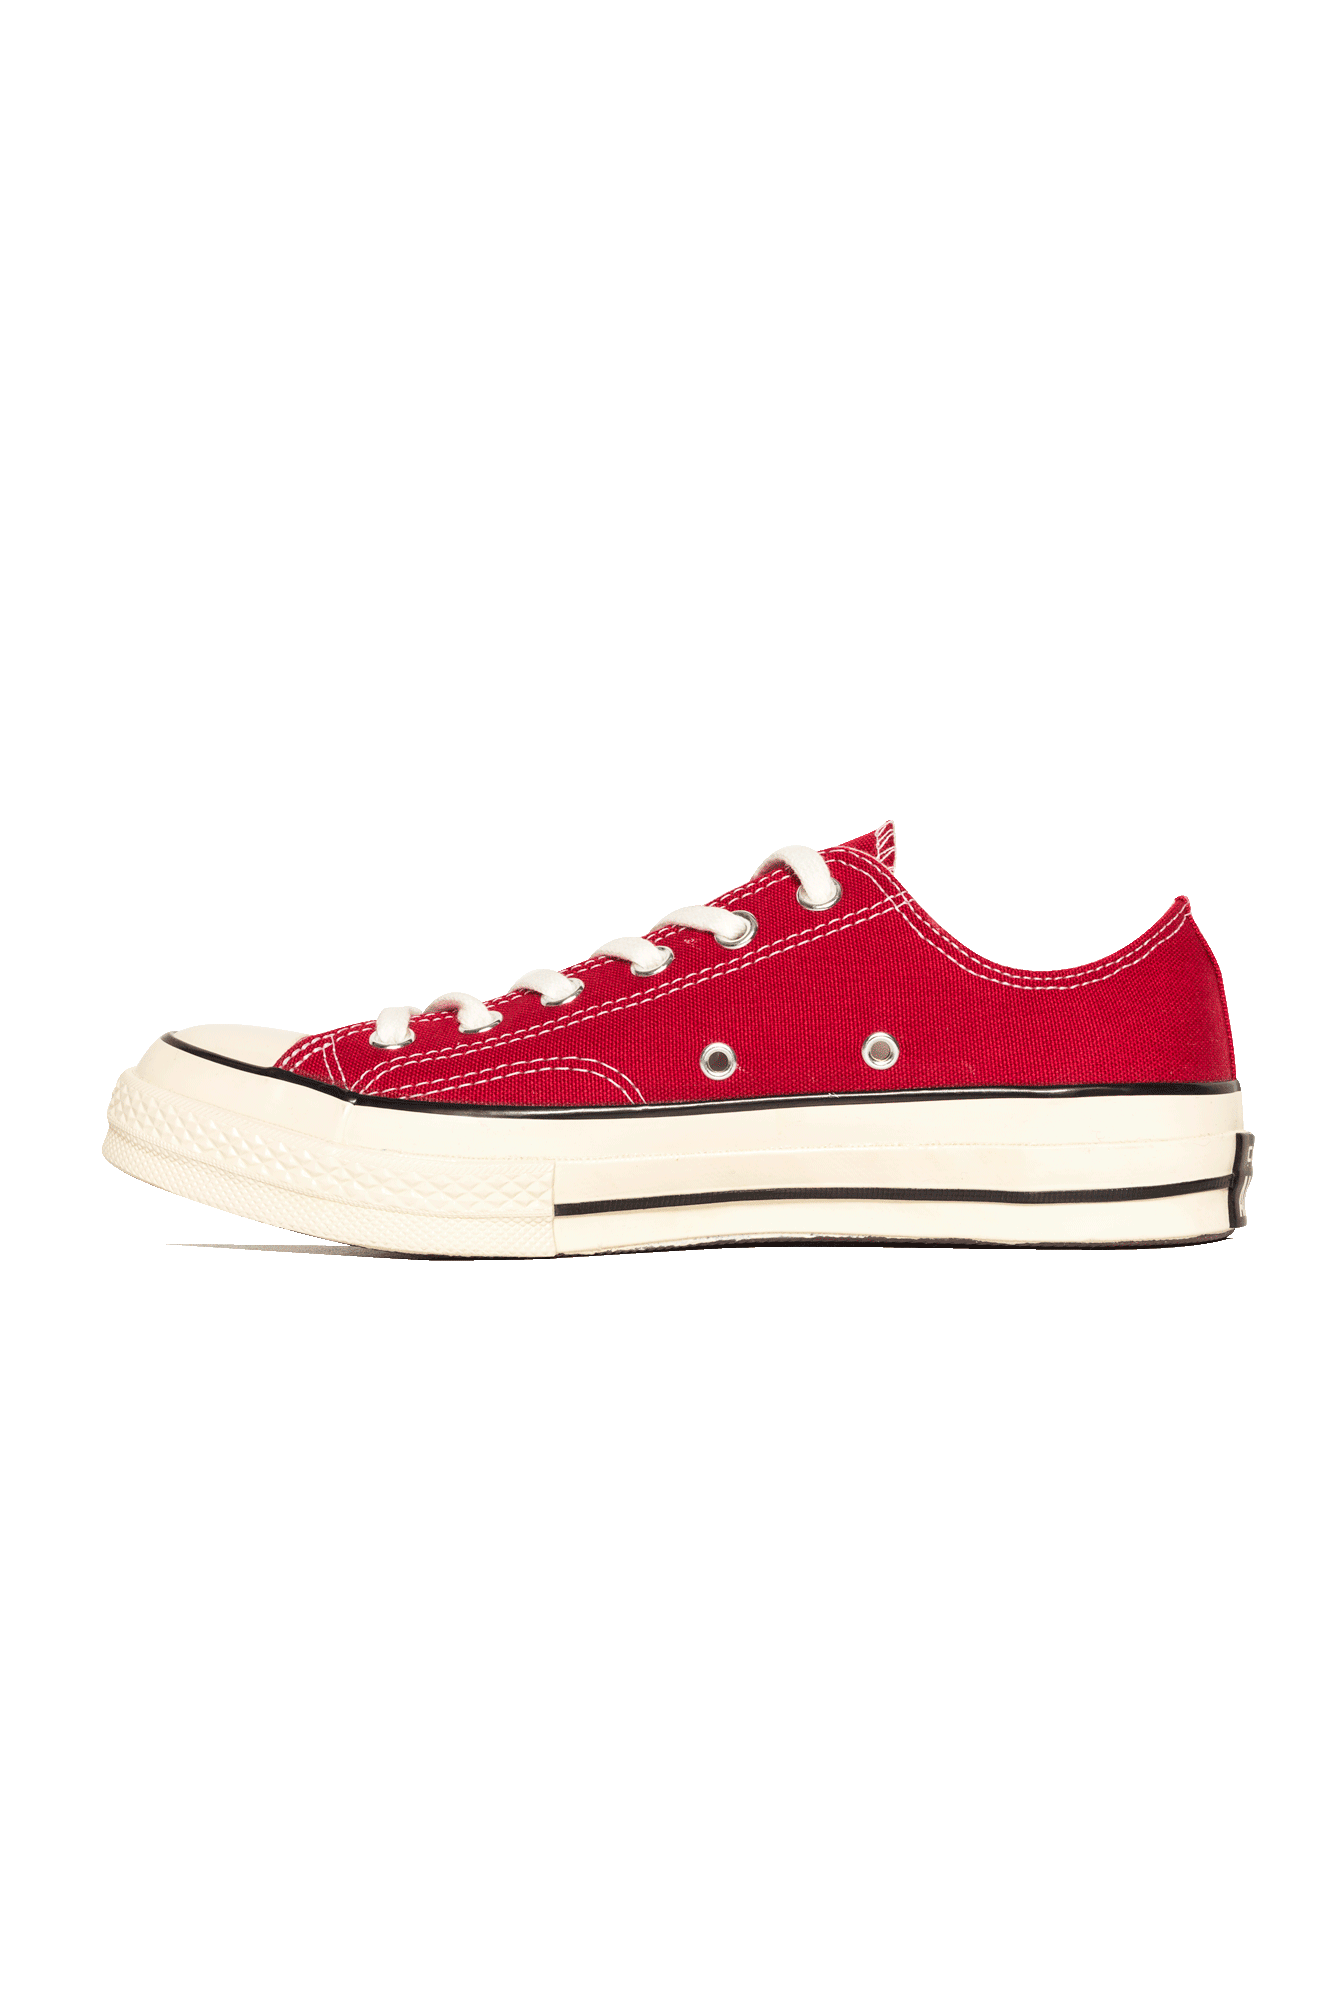 Converse Sneakers Chuck Taylor Premium Ox 1970'S Canvas Red 142337C#000#C0012#3,5 - One Block Down